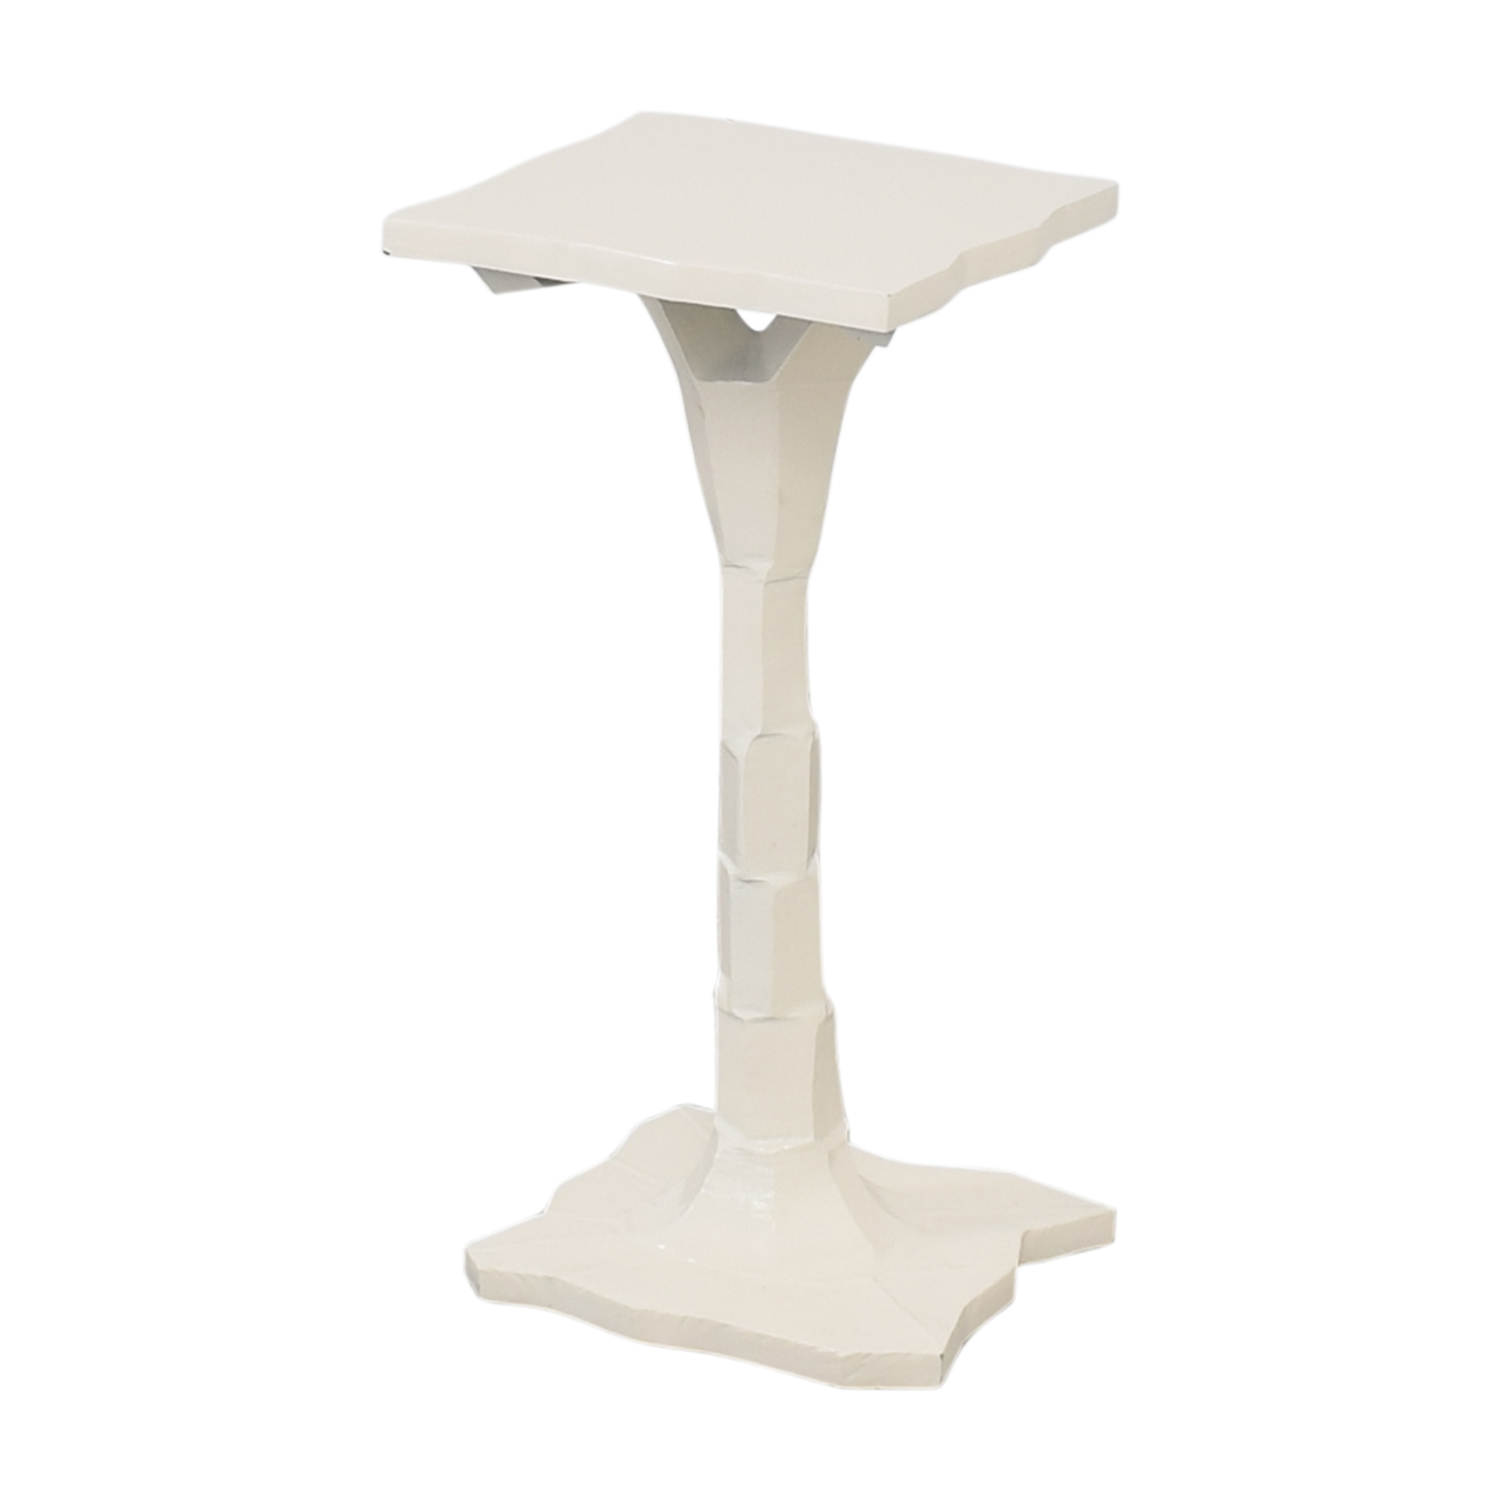 Pedestal Side Table price